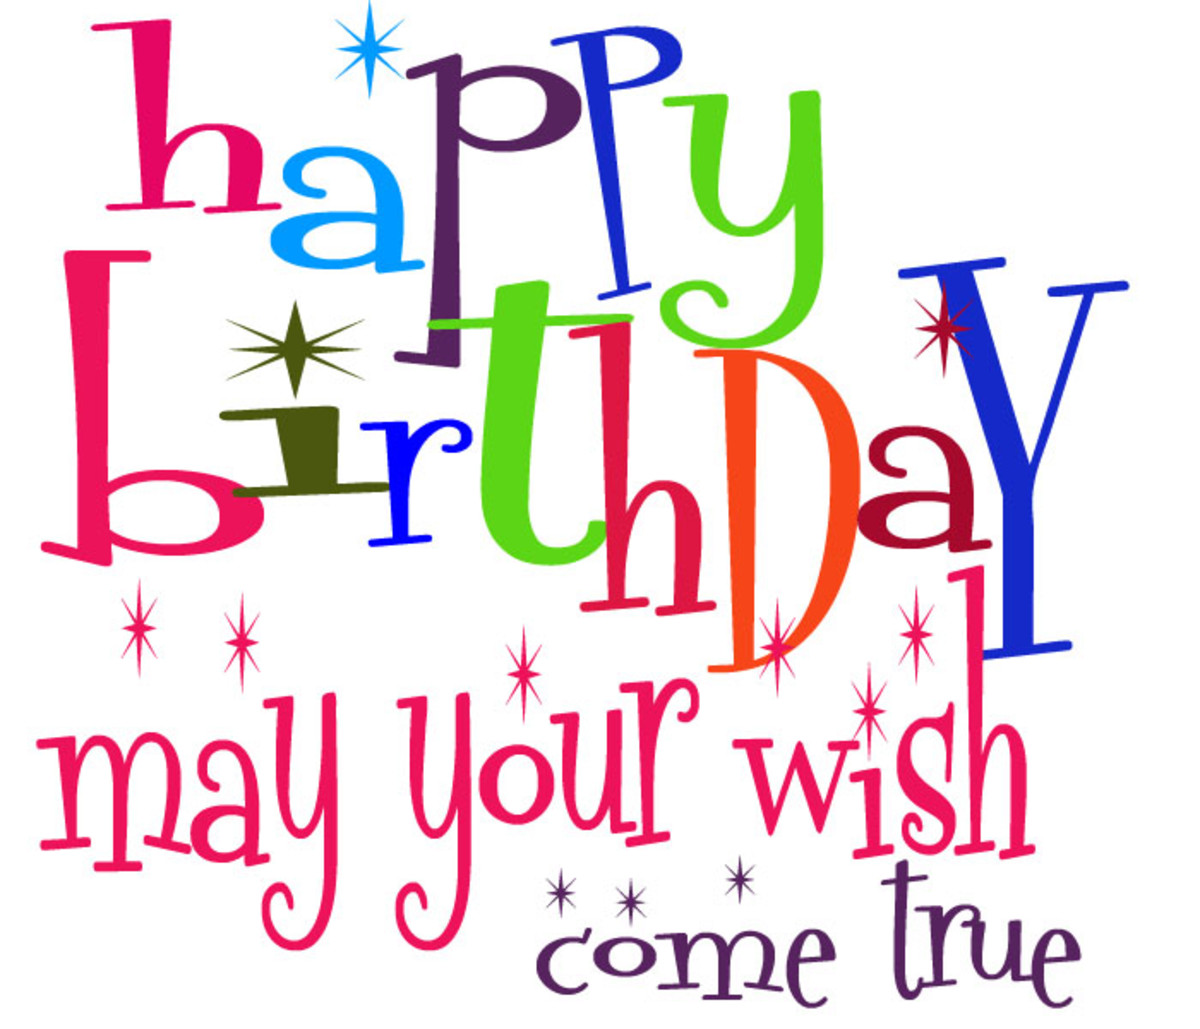 Cute Birthday Clipart for Facebook - May Your Wish Come True!